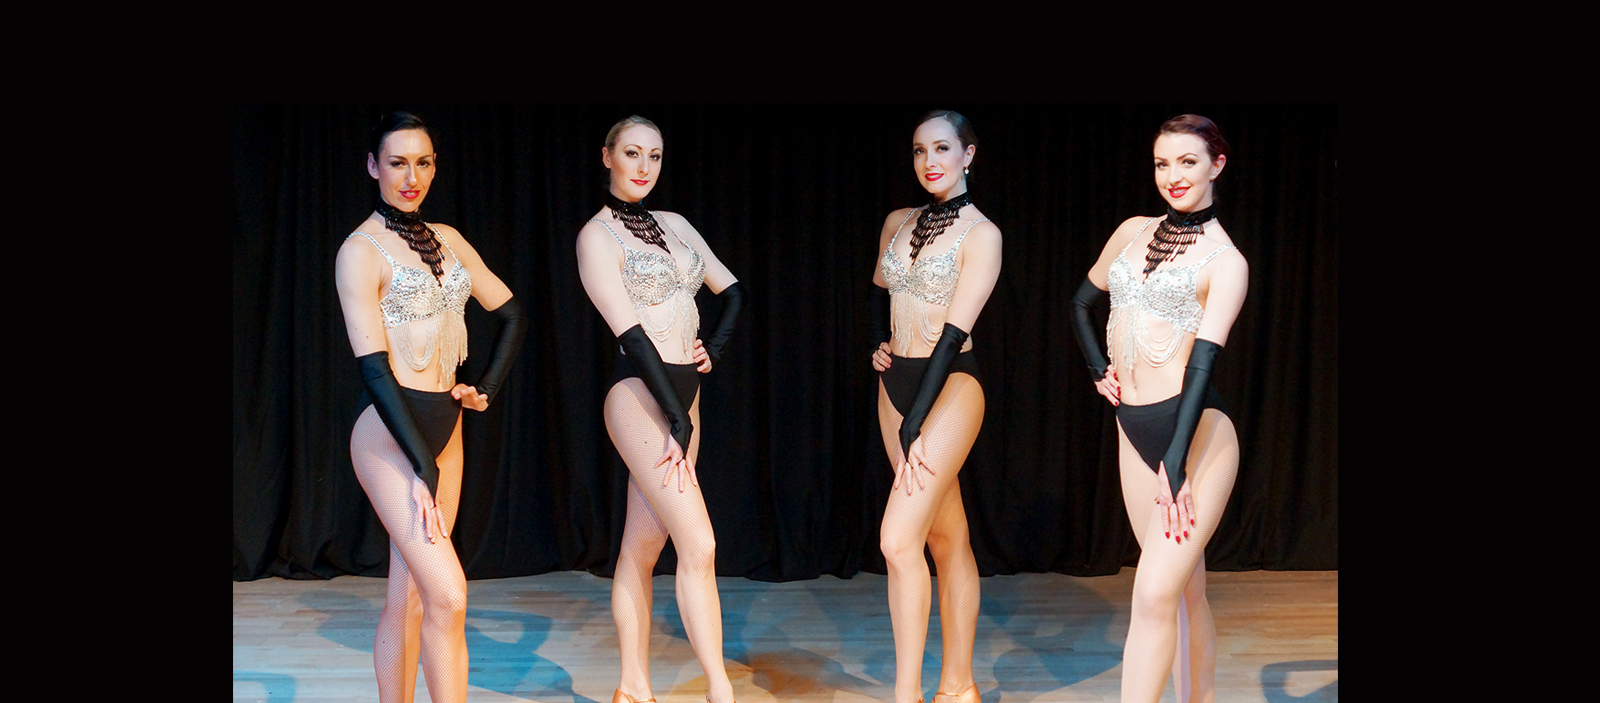 Female dancers in black and gold costumes